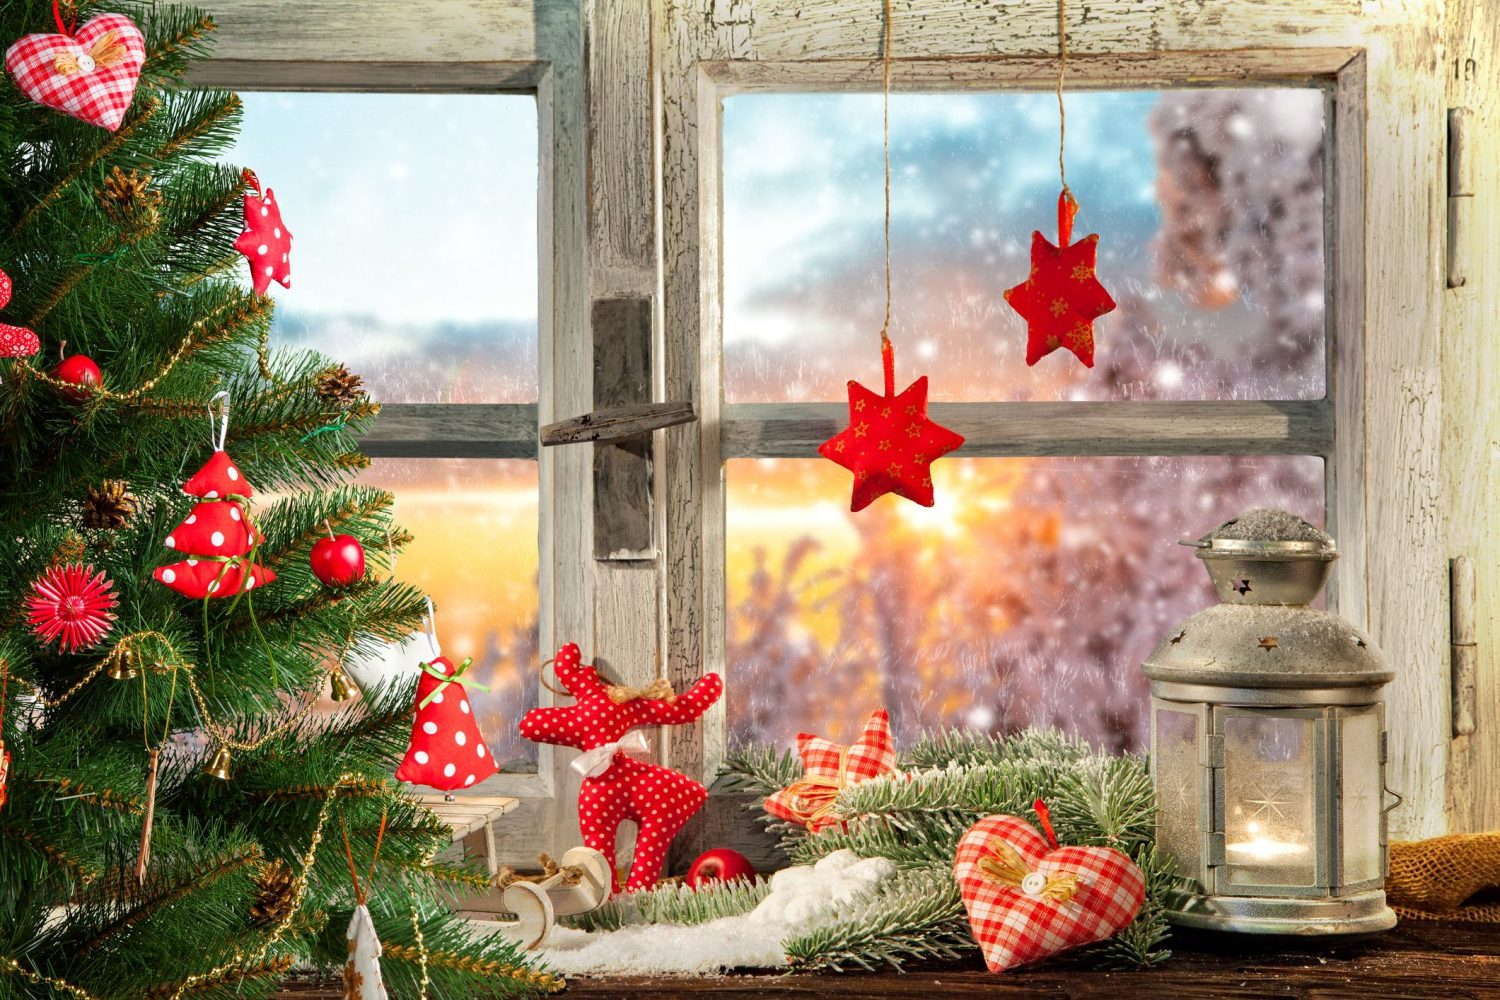 christmas-window-decor-16-1535060691